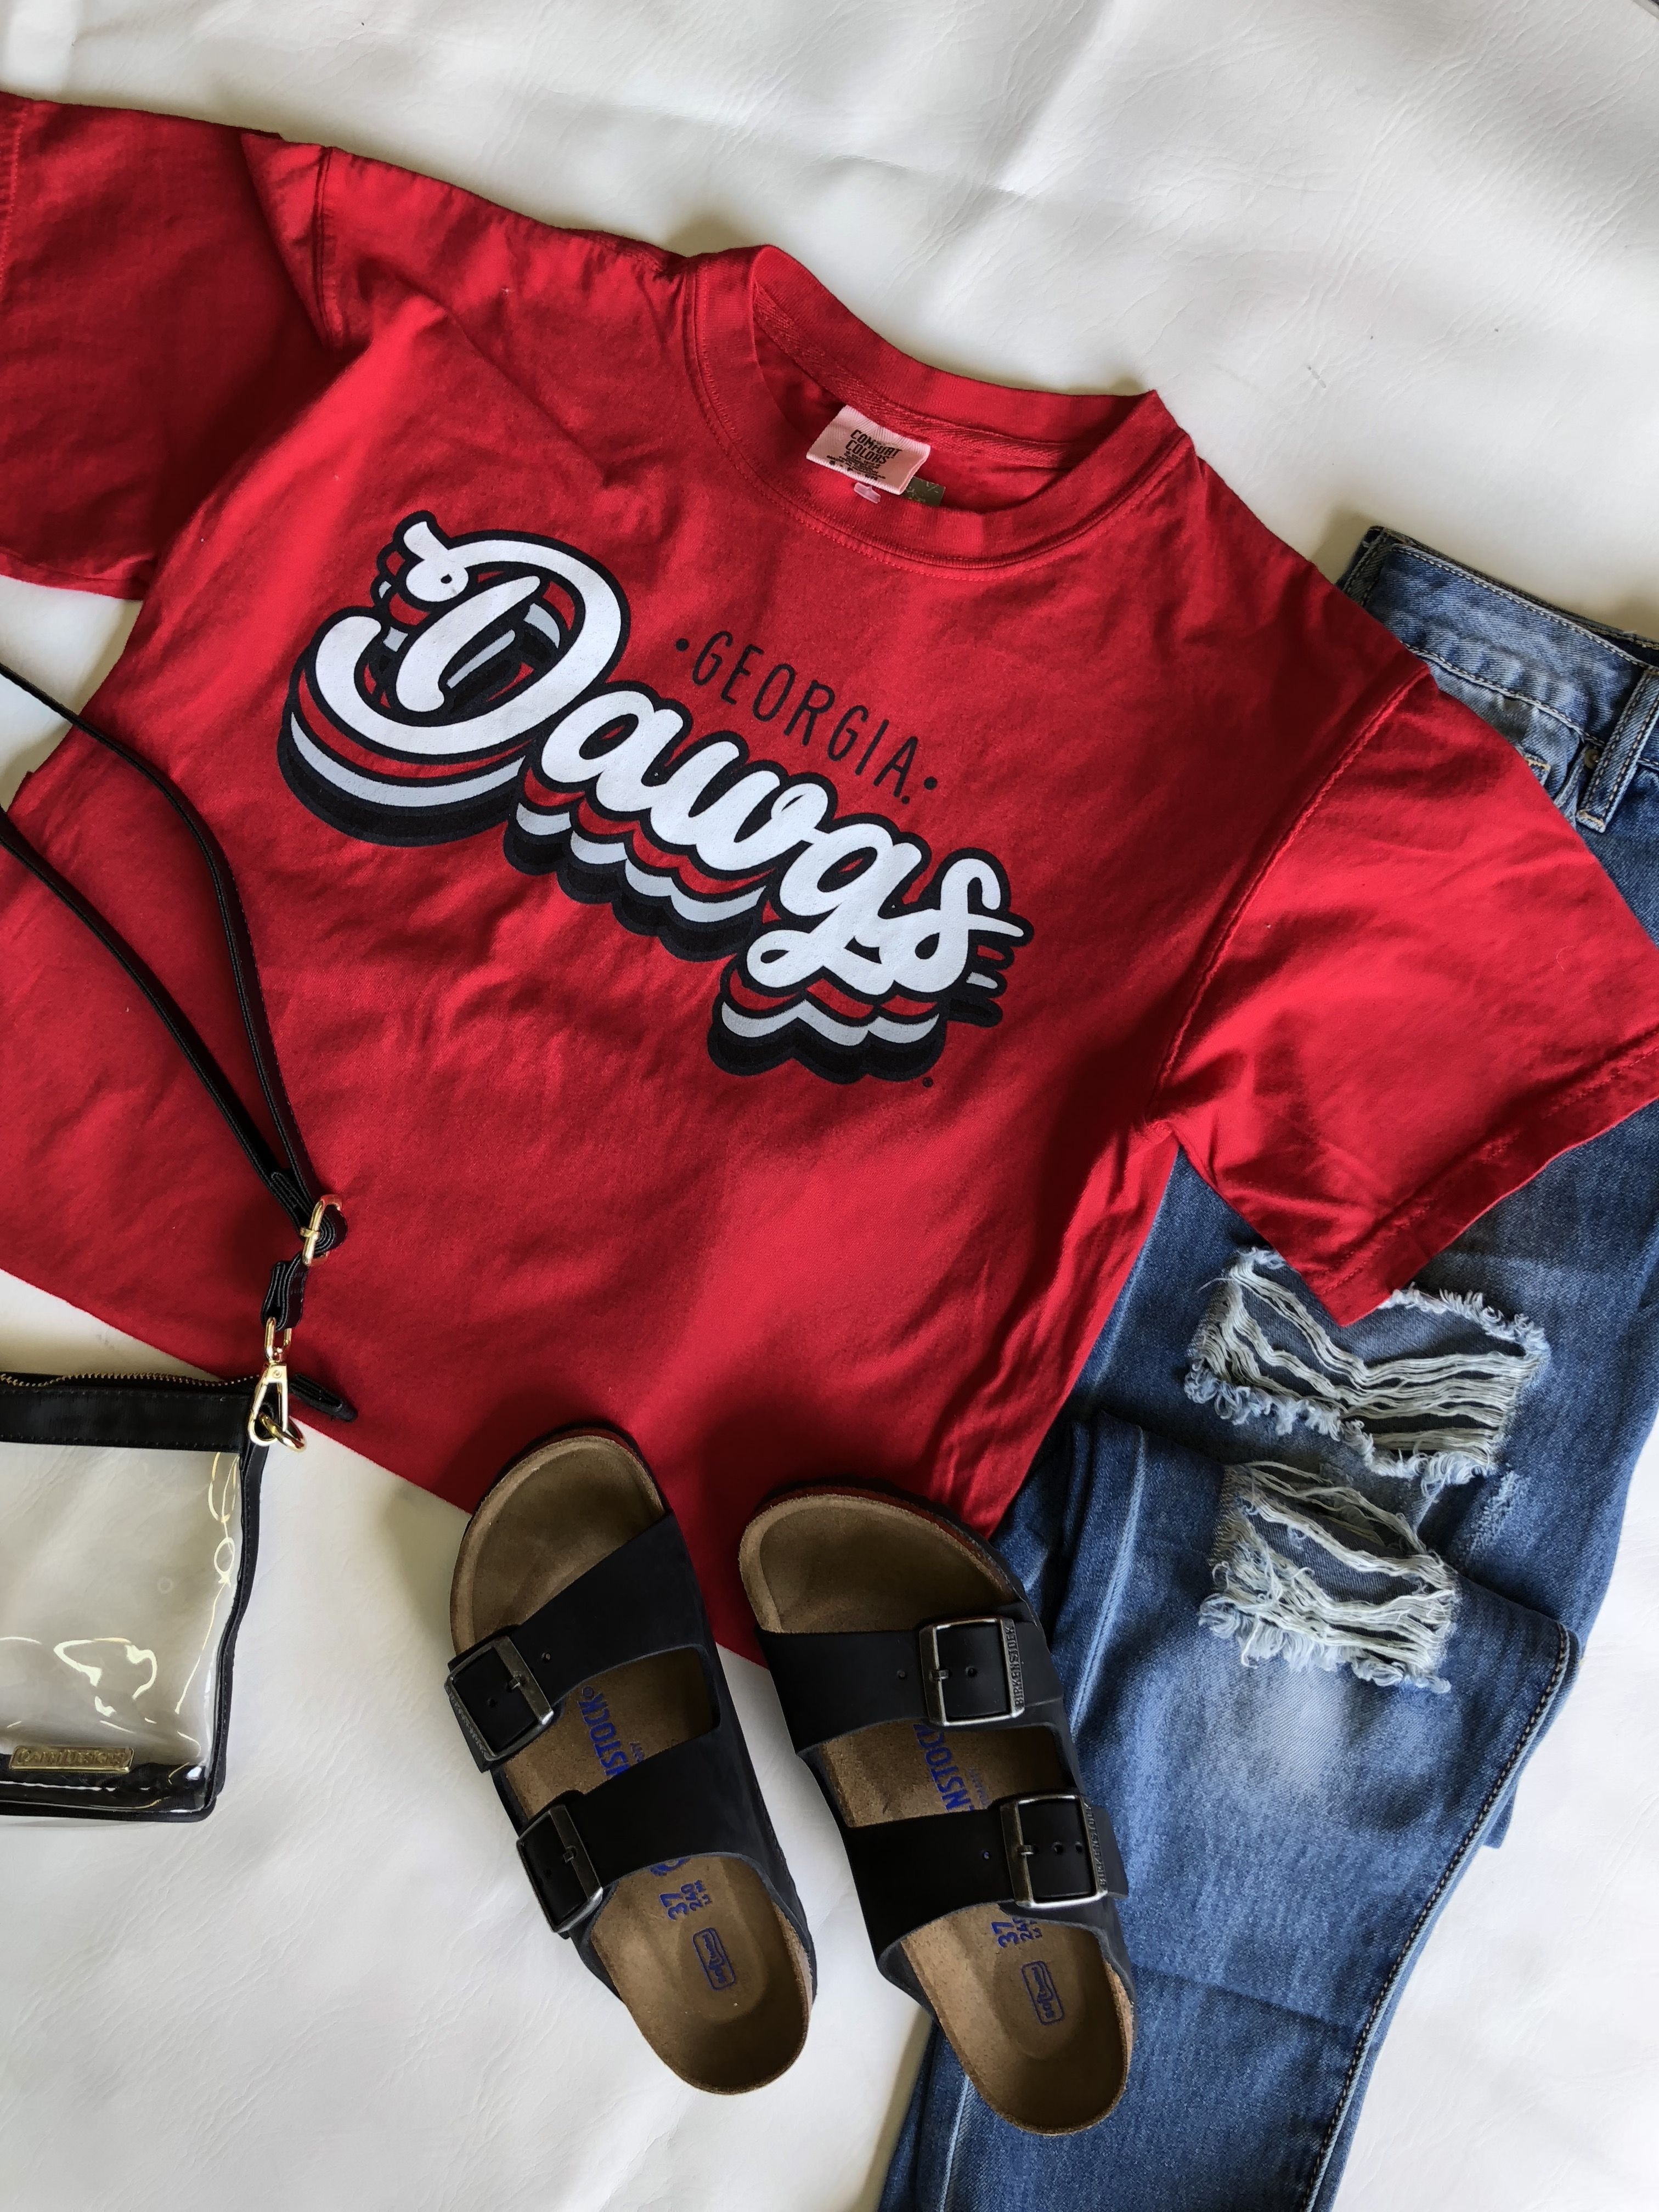 UGA DAWGS It's game day in Love this retro tee